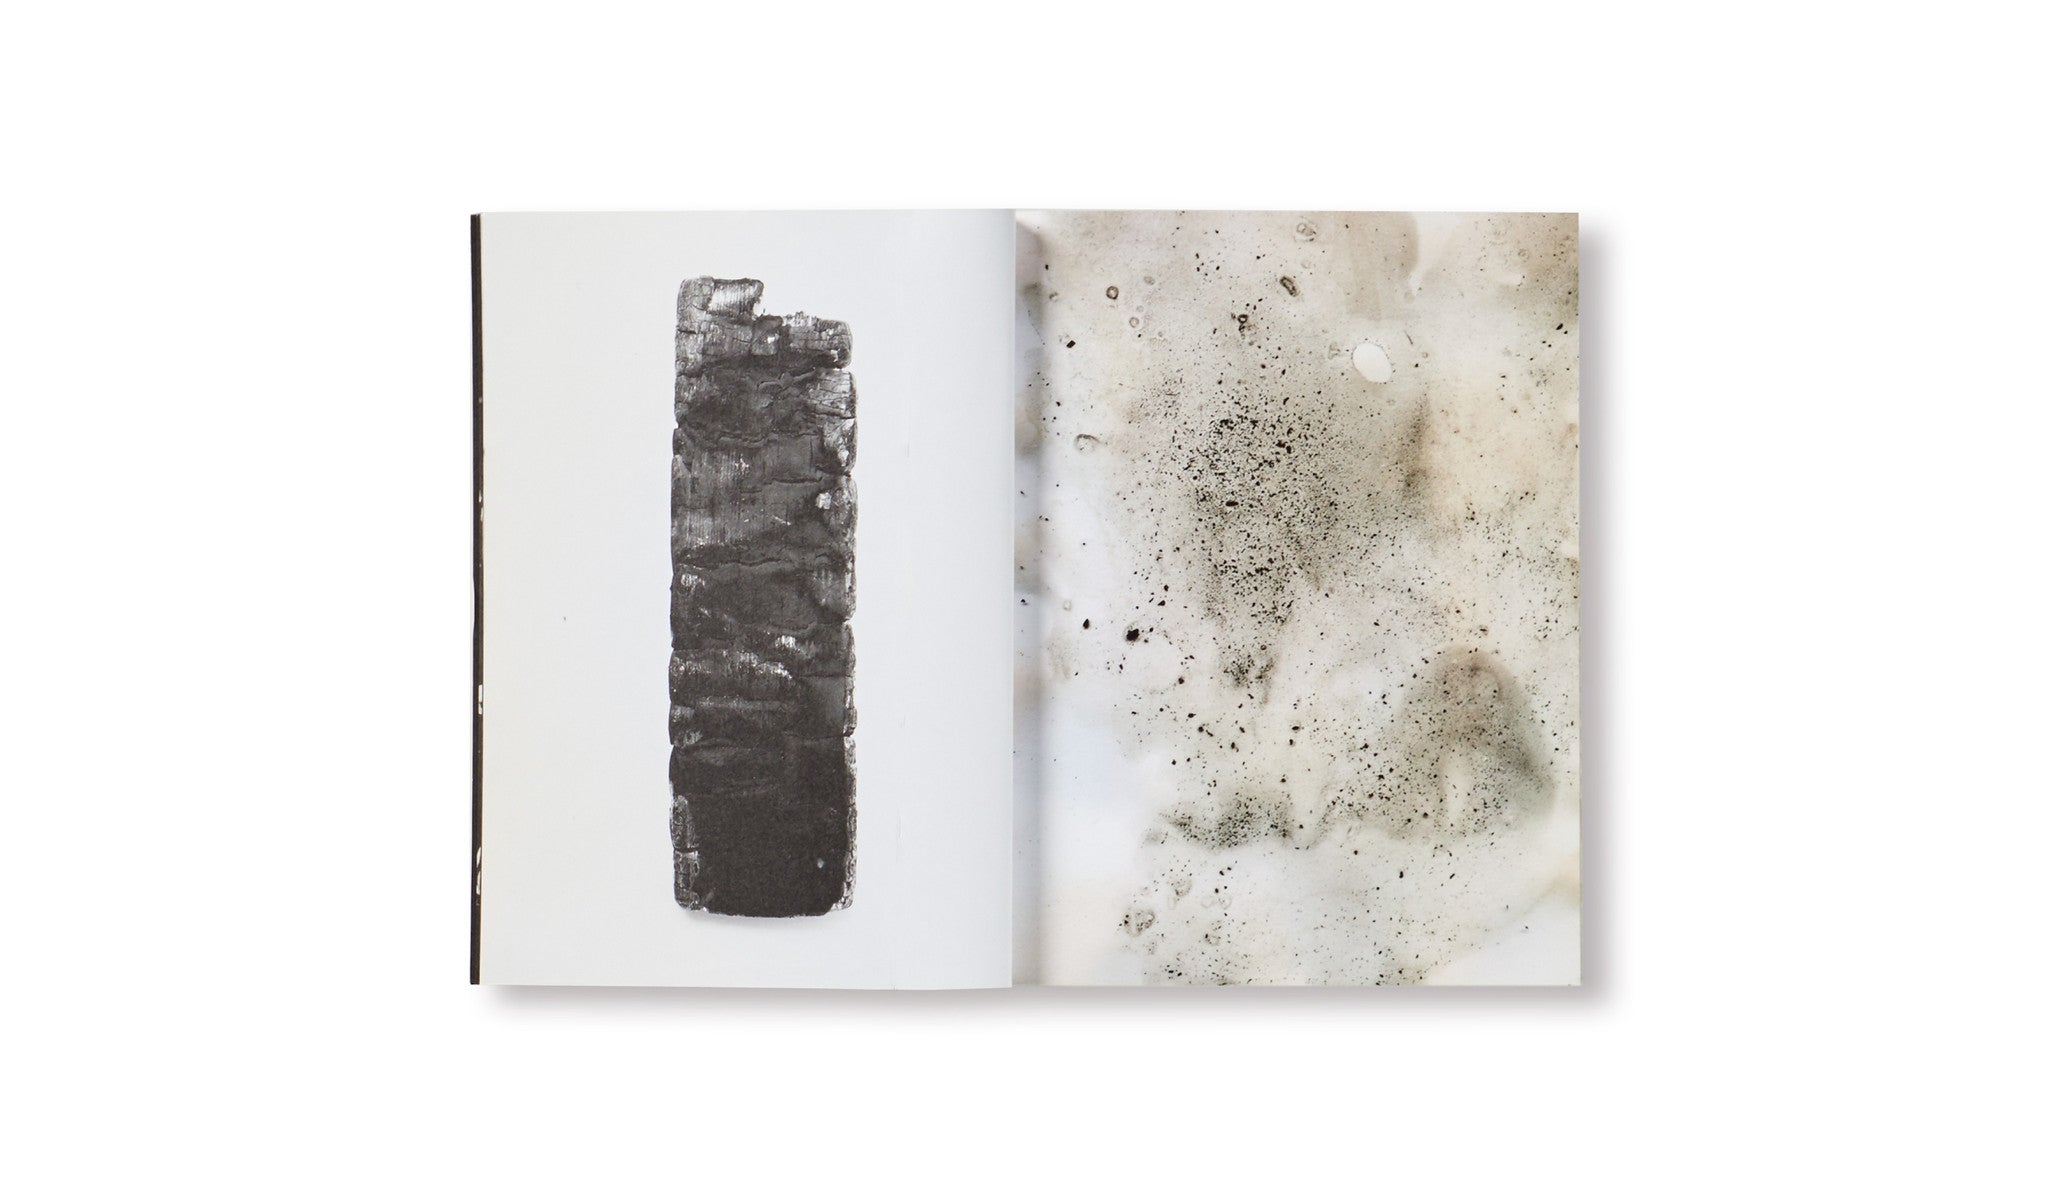 SPBH BOOK CLUB VOL.VI by Melinda Gibson [SIGNED]